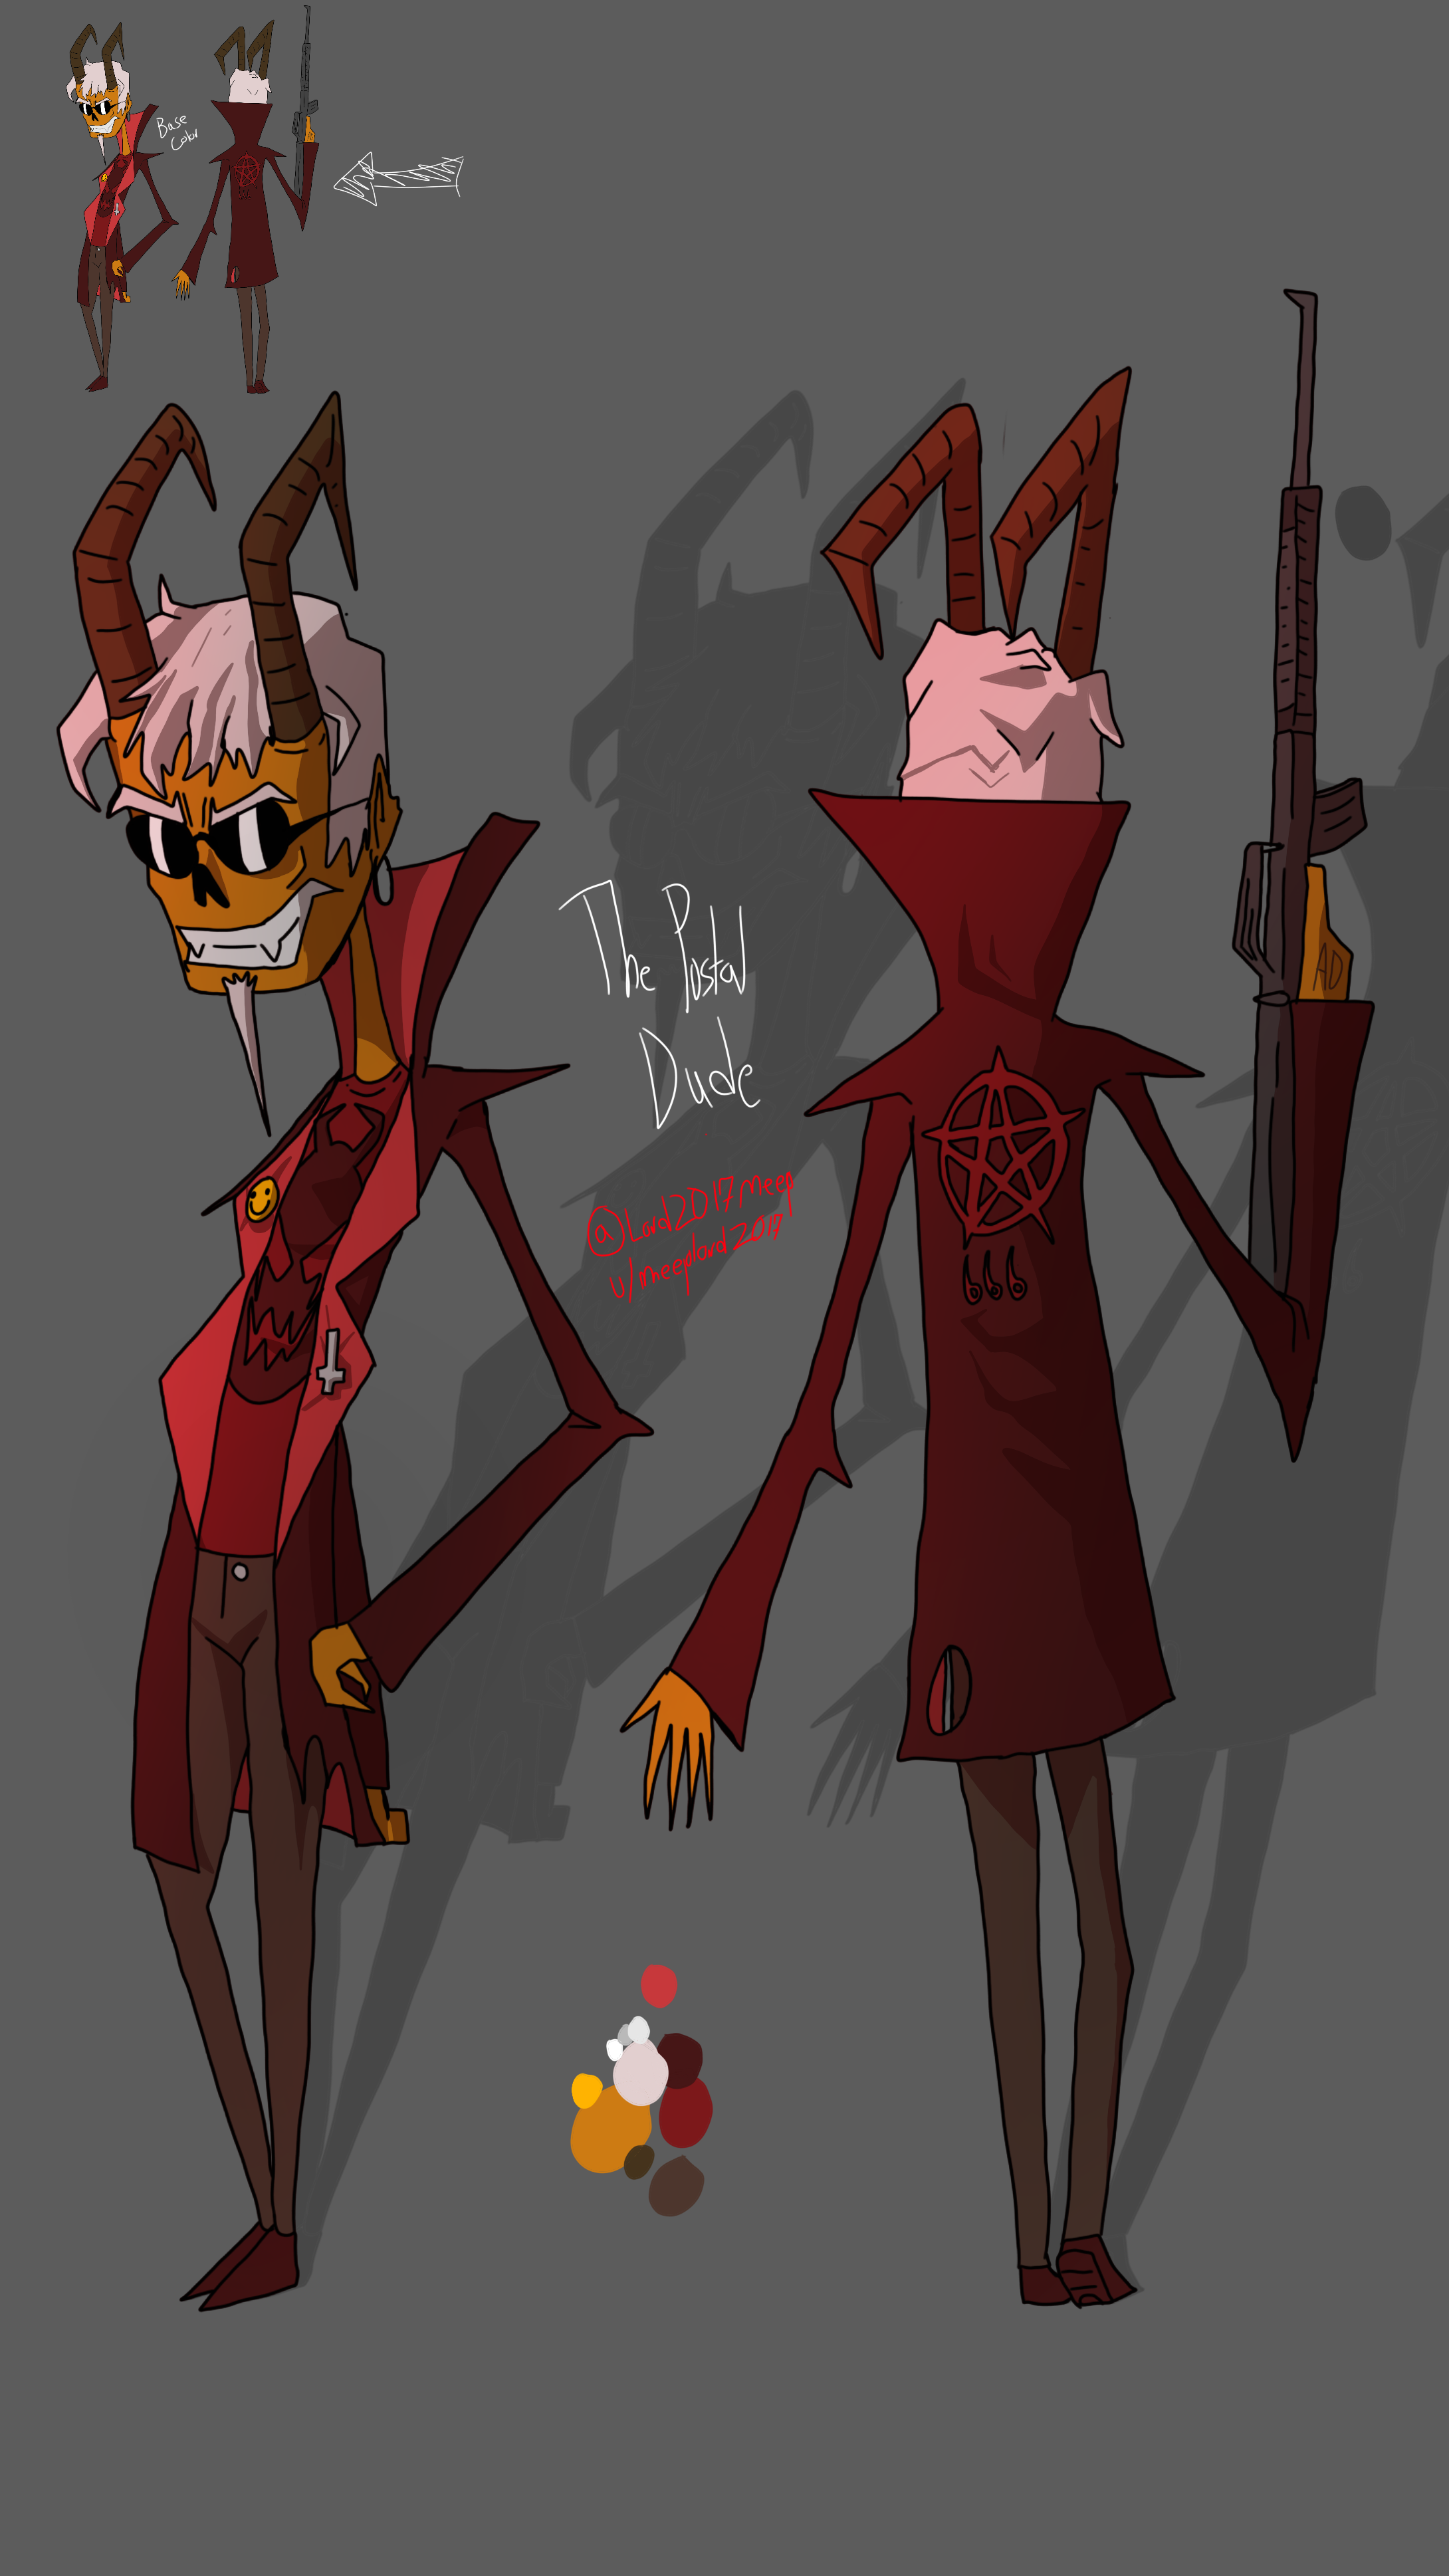 The Postal Dude As A Hazbin Demon By Meeplord2017 On Newgrounds